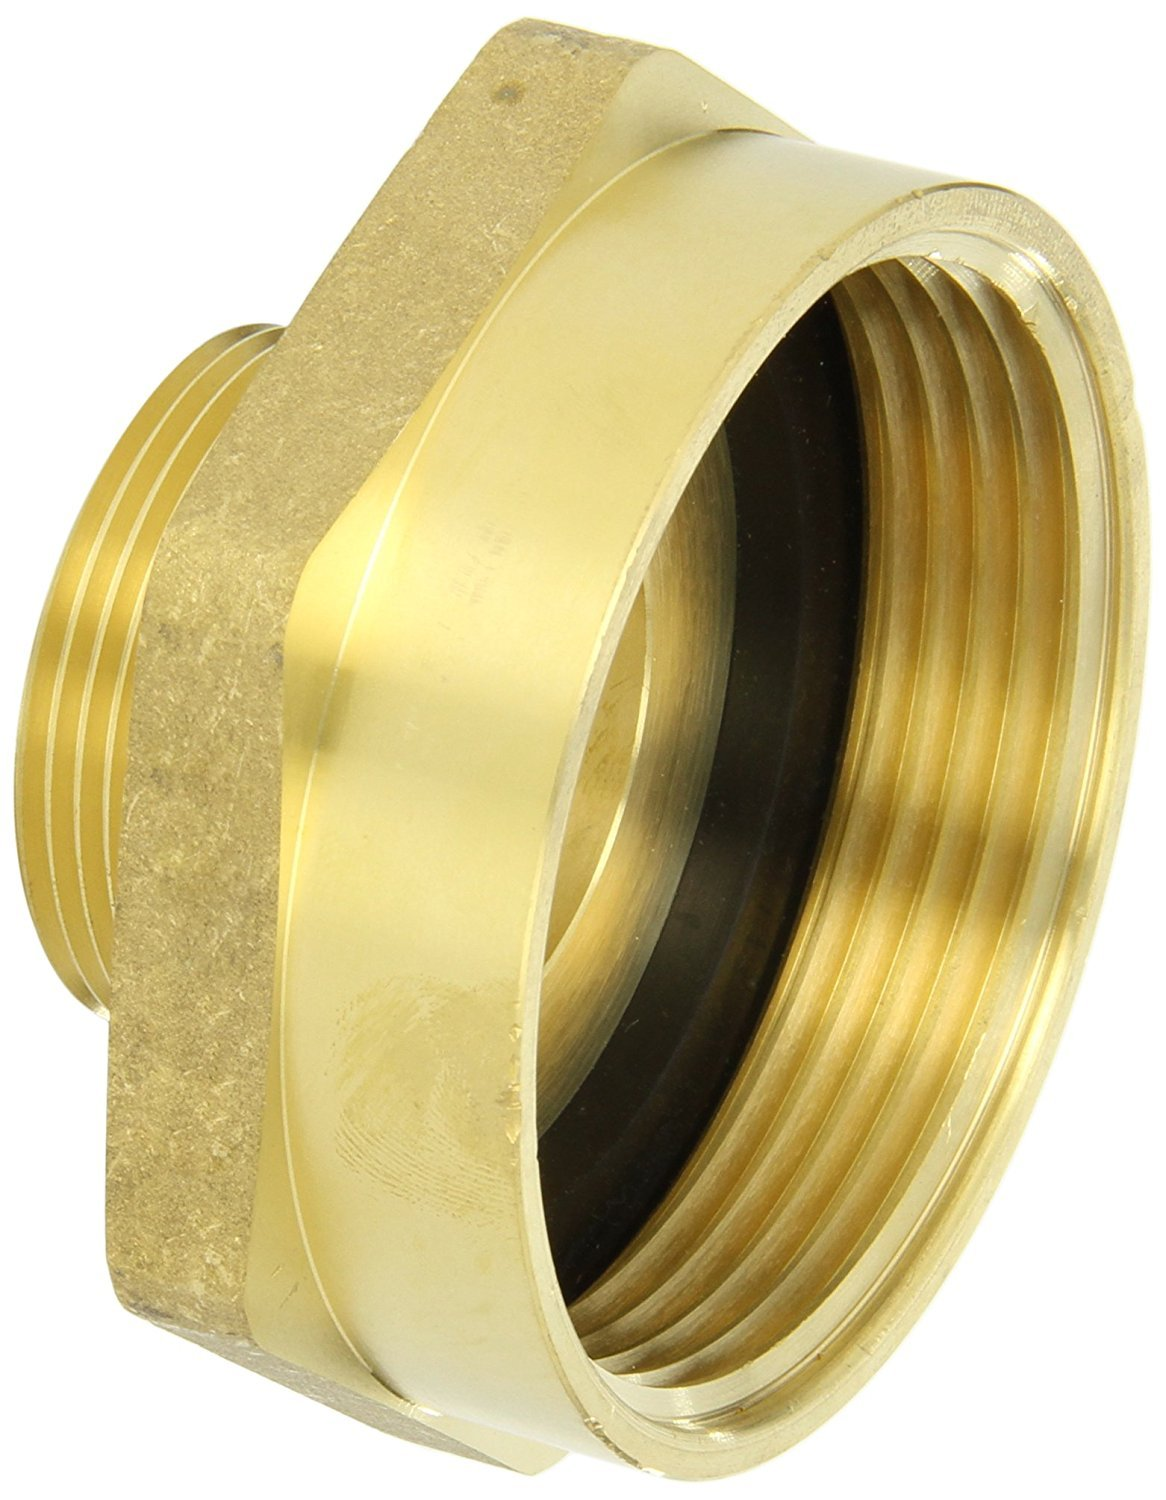 Campbell Fittings FM25F15T Female to Male Nipple, 2.5'' ID, Brass, 2-1/2'' NST x 1-1/2'' NPT